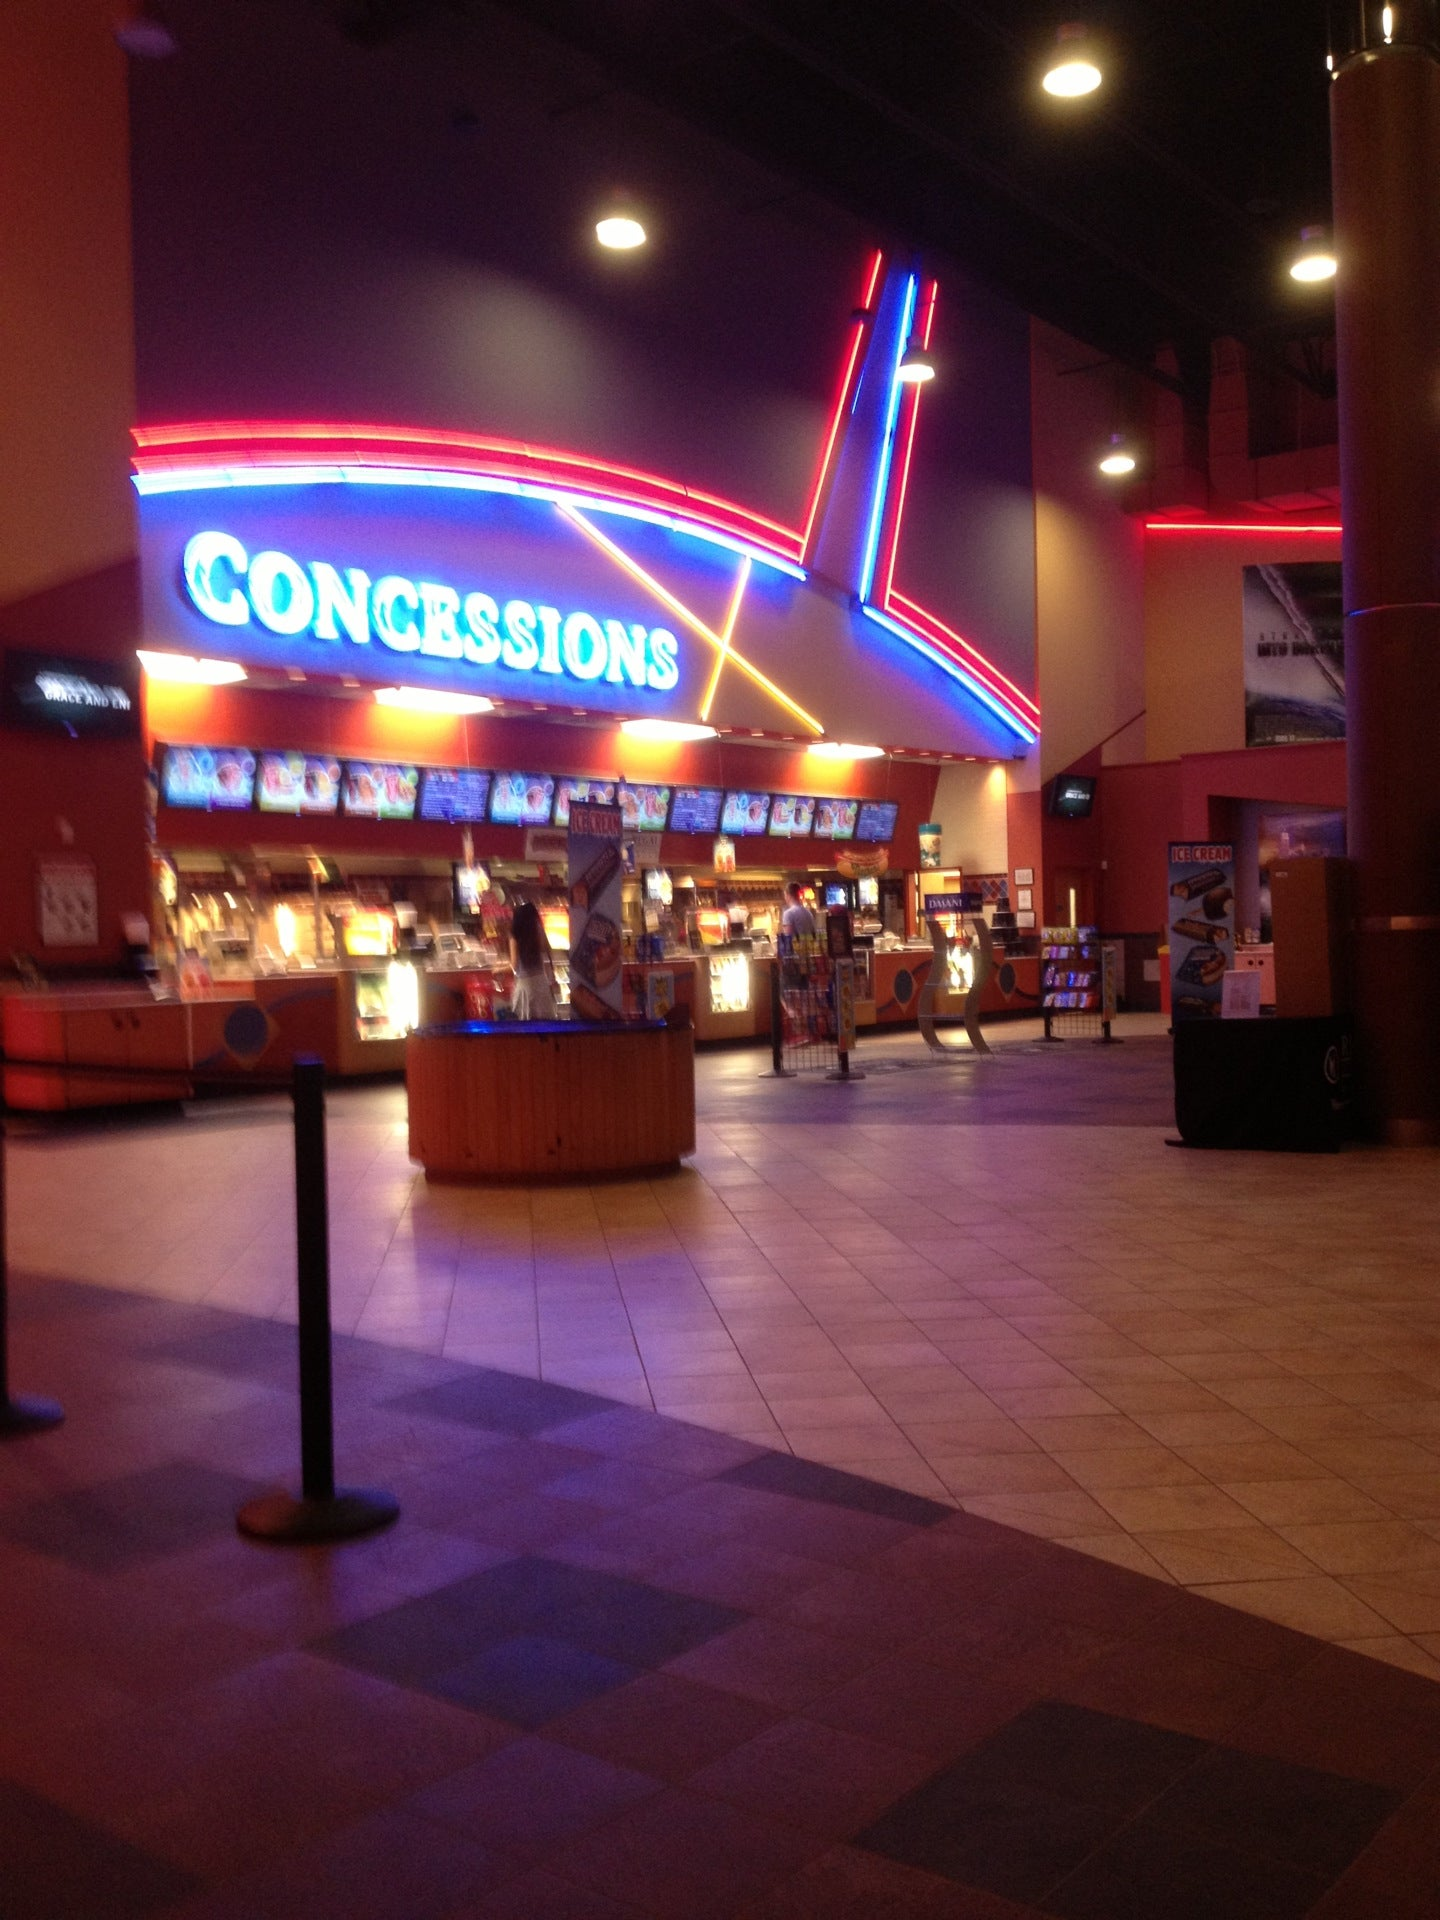 Theaters & Cinemas ⇨ Regal Movie Theaters ⇨ Regal Ithaca Mall Stadium Movie Tickets. and. Showtimes. Today. DEC. Tomorrow. DEC. Friday. DEC. Saturday. DEC. Movie Times list for Wednesday 5th of December Regal Ithaca Mall Stadium 14 40 Catherwood Road, Ithaca, NY () ext. Need Directions?